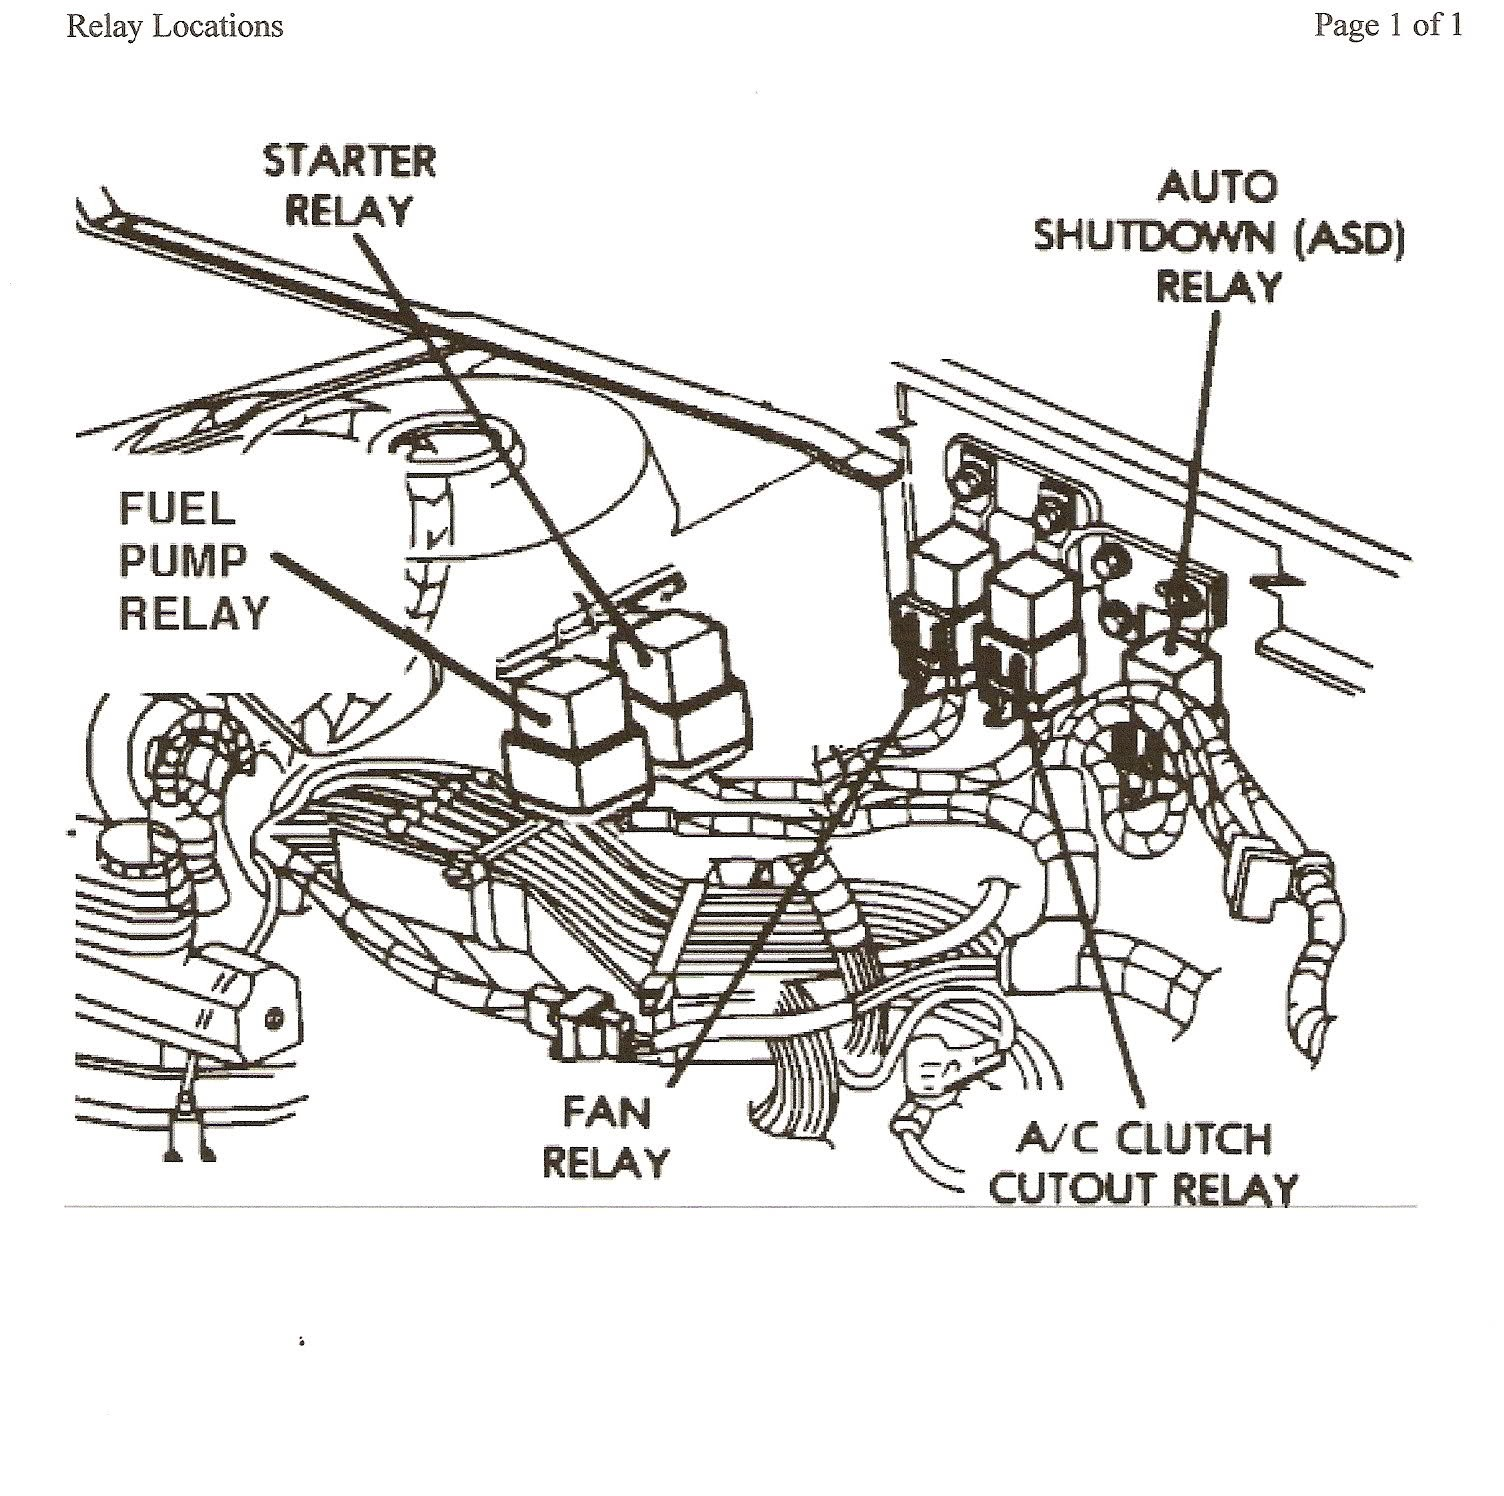 07 300 Chrysler Starter Wiring on 2005 chrysler town and country engine diagram